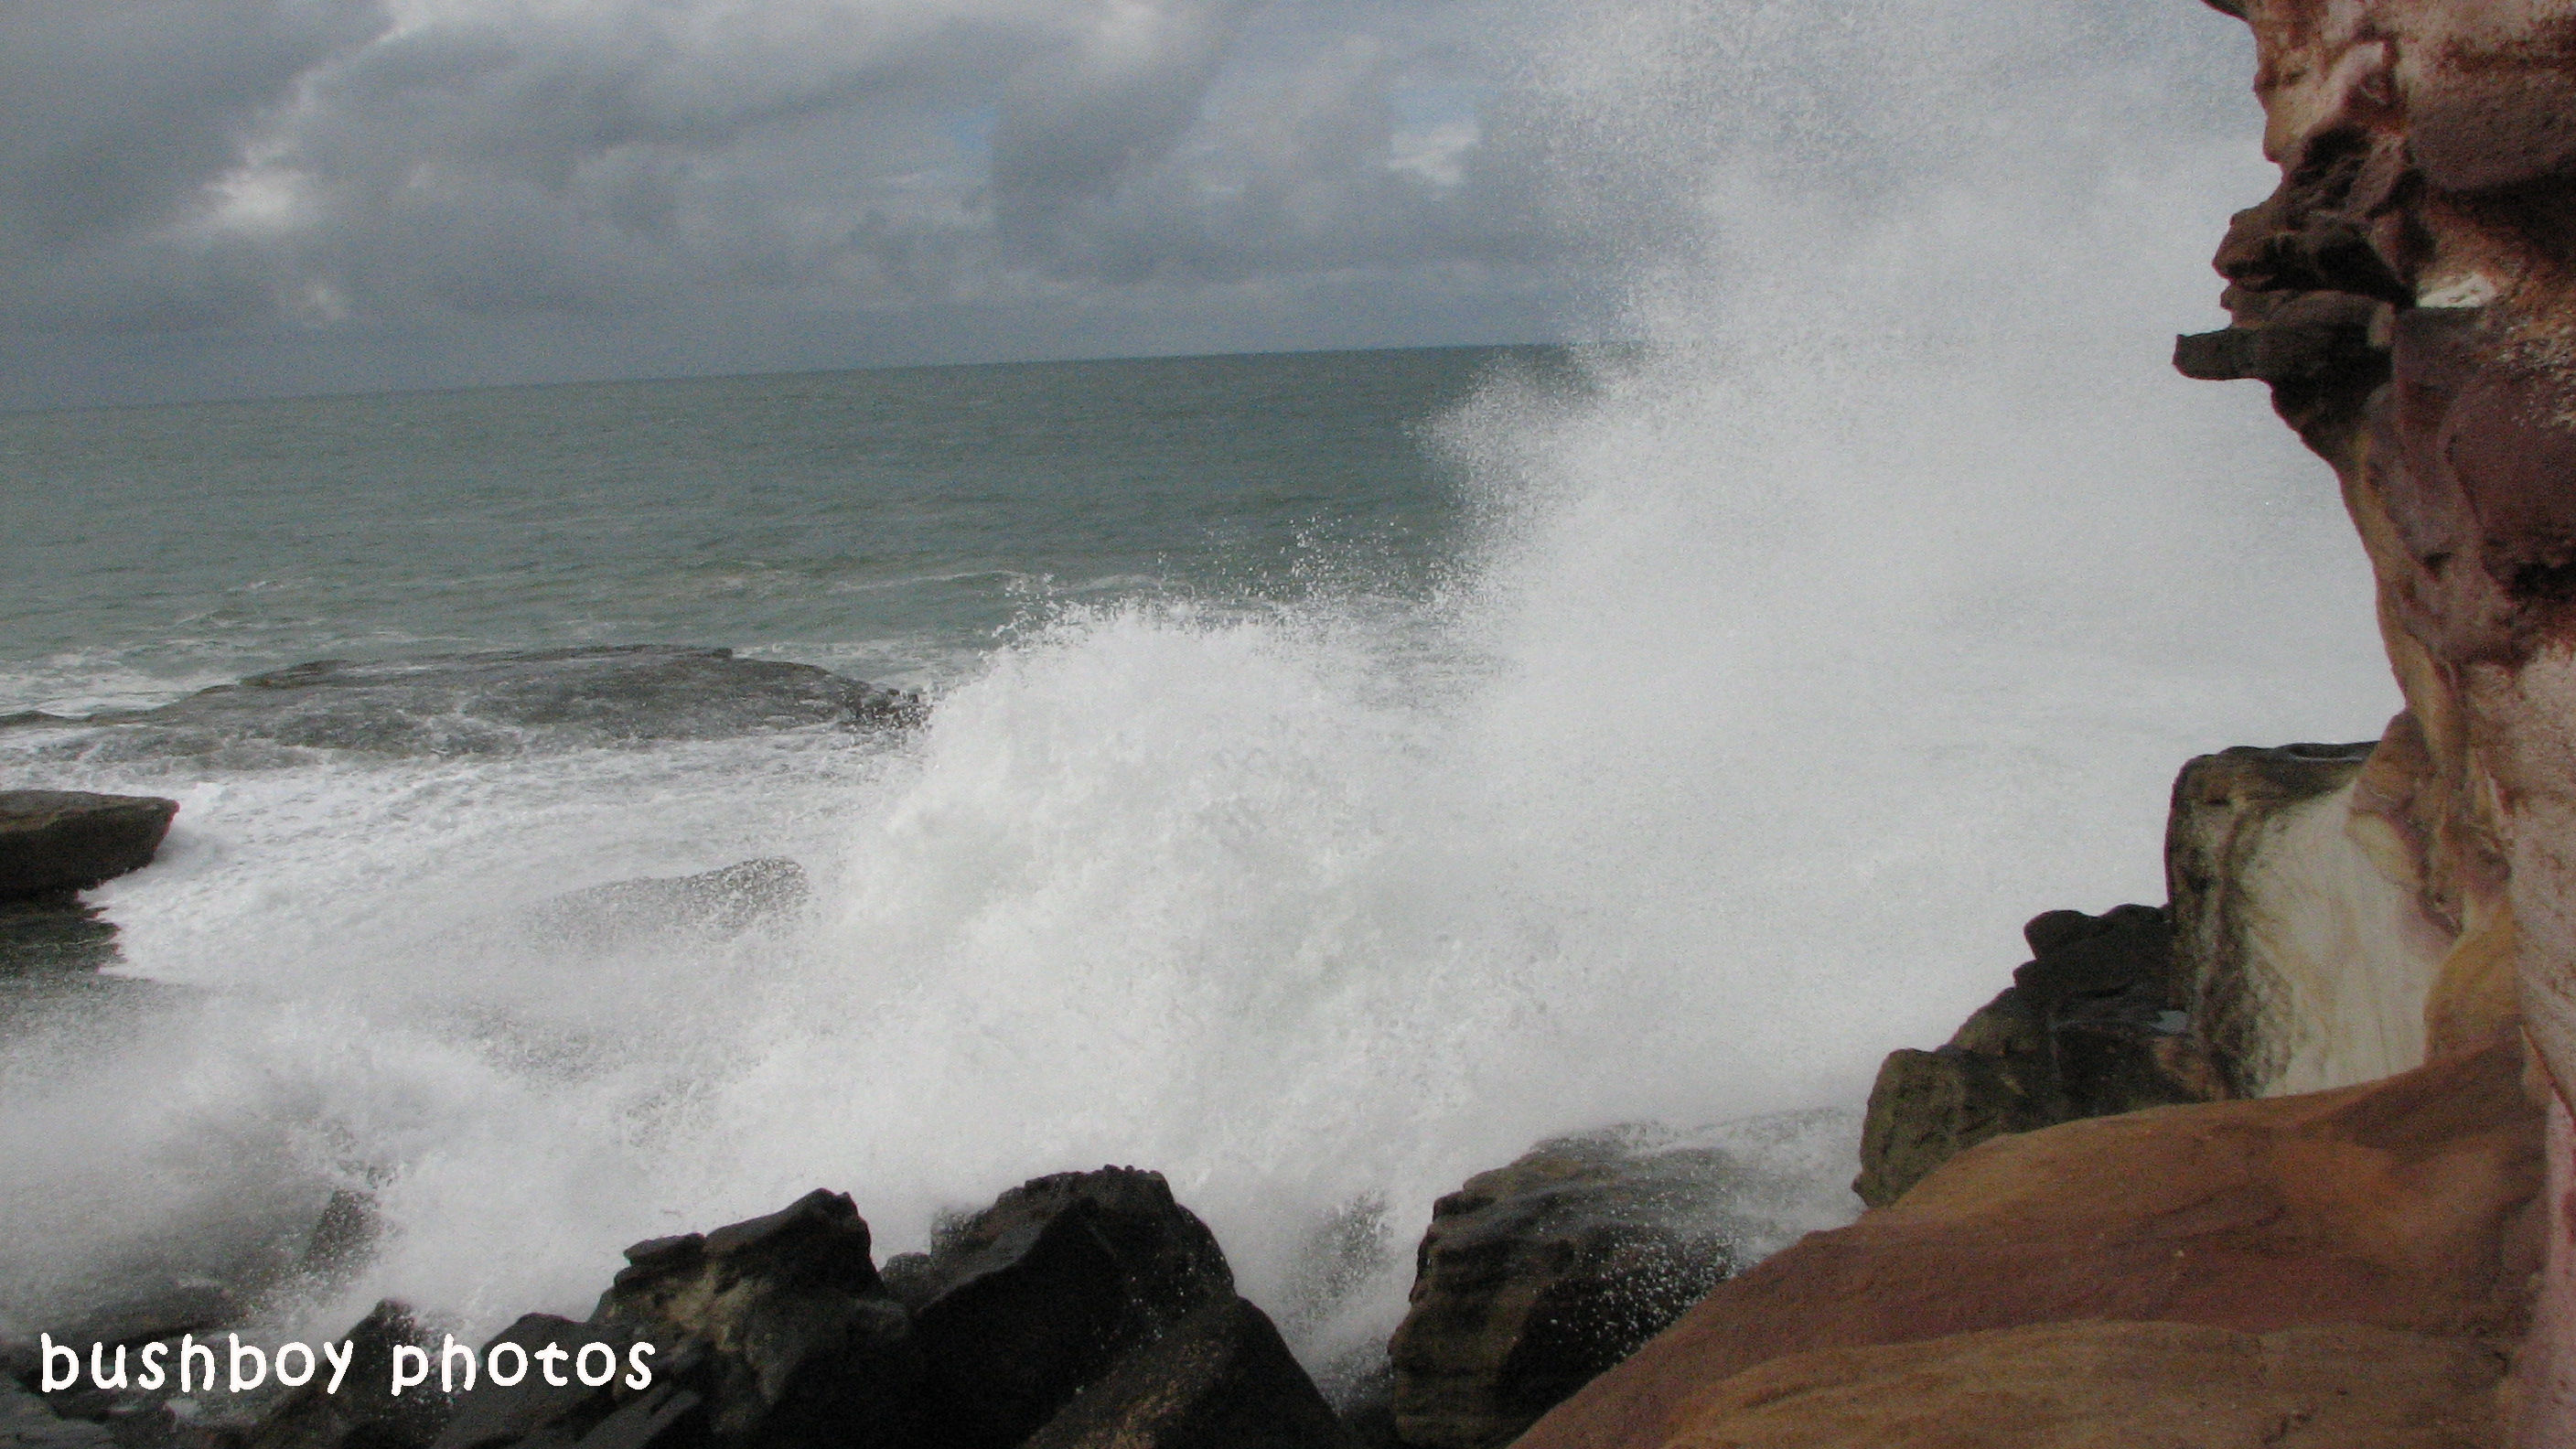 180628_blog challenge_waves_crashing rocks